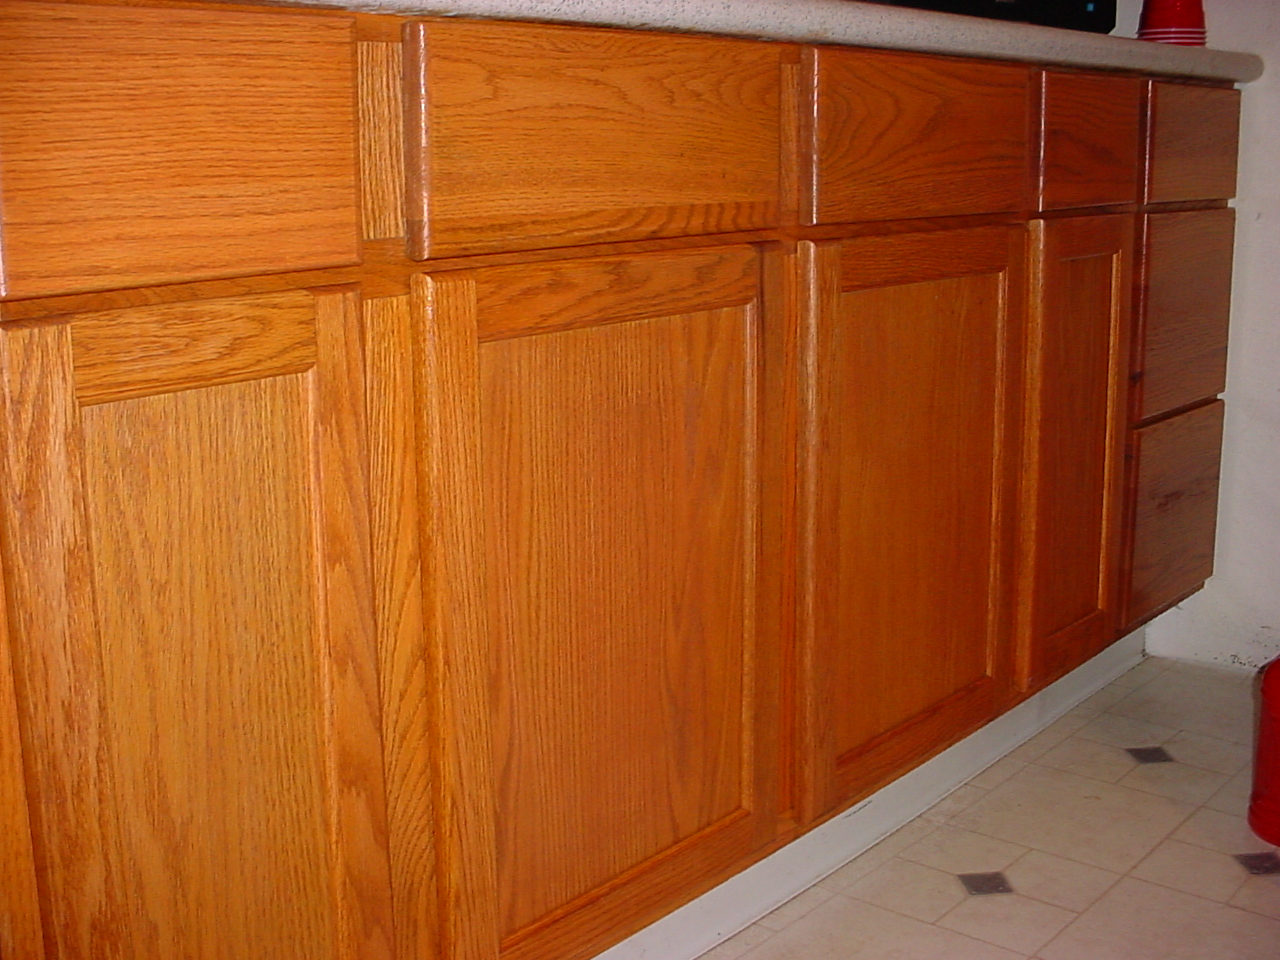 Kitchen cabinets re staining service no need to waste Newwood cupboards